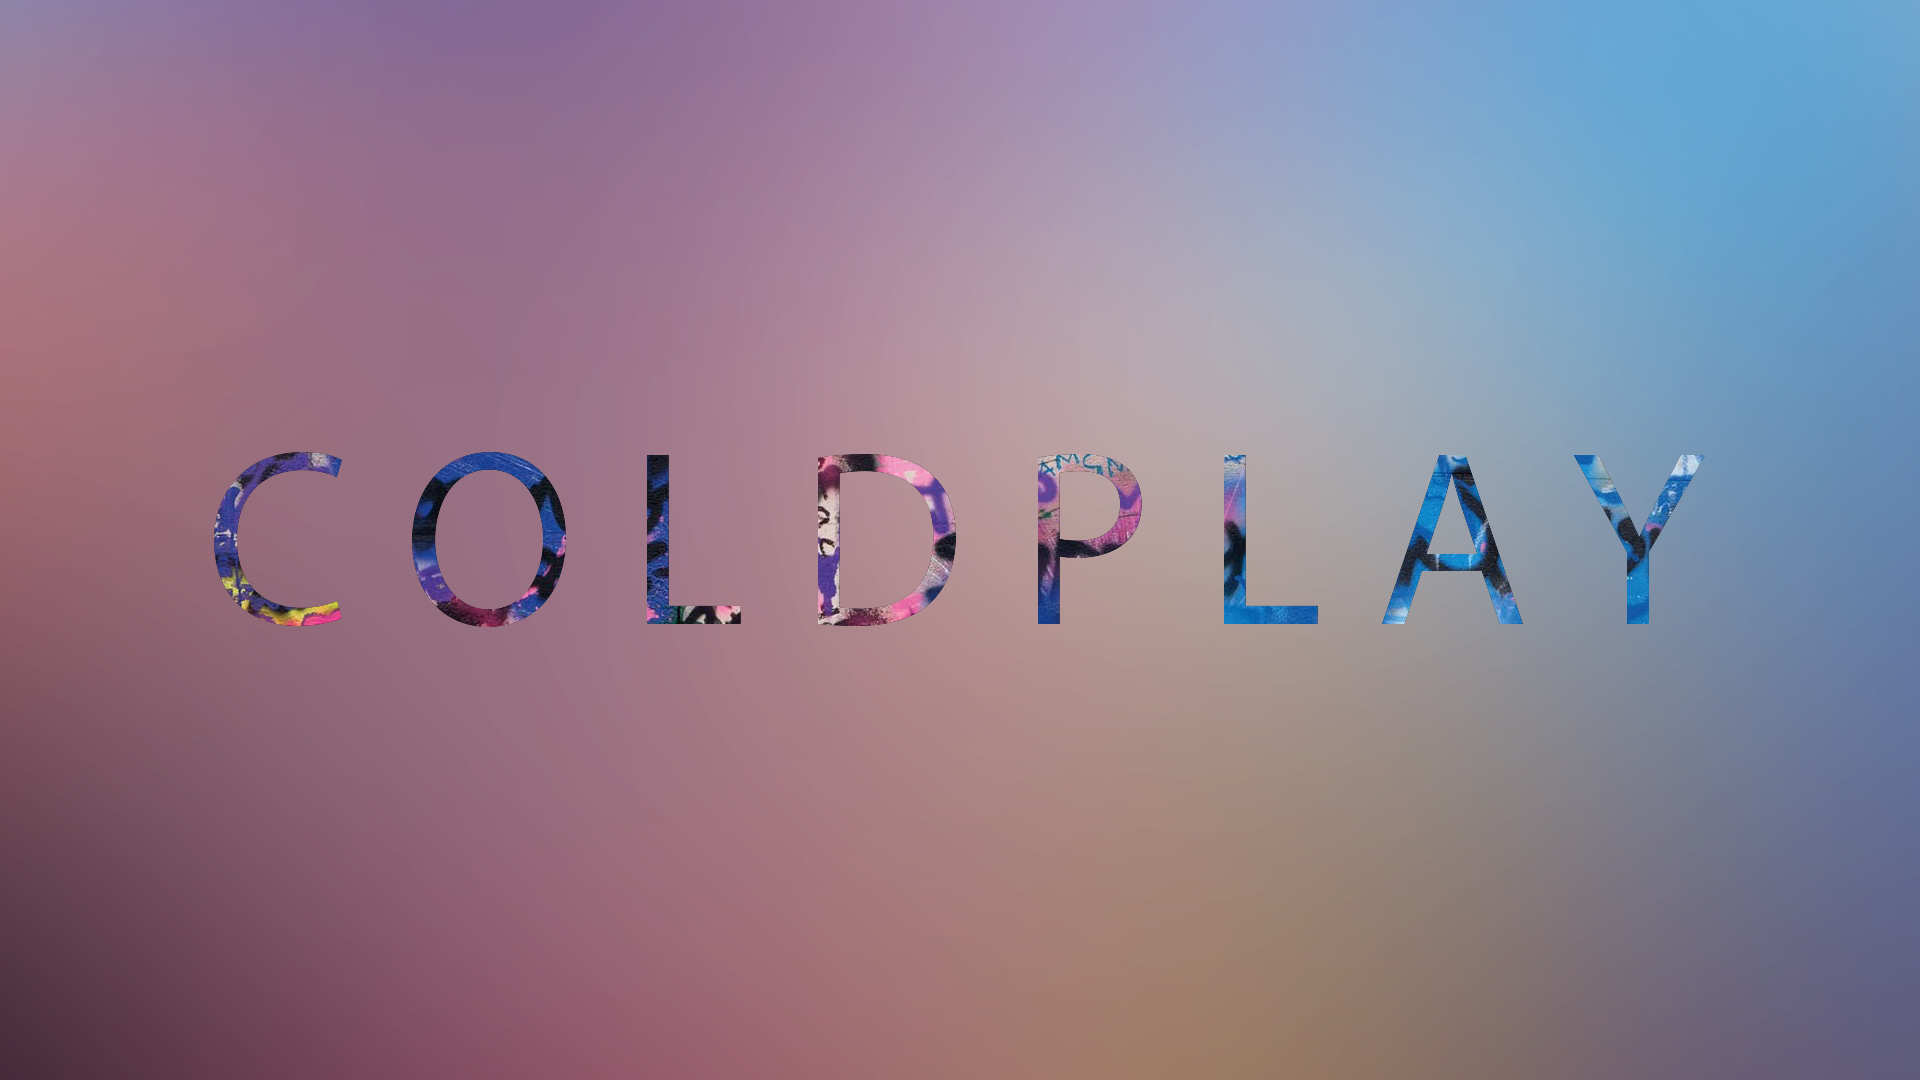 Coldplay-Viva-La-Vida-Parachutes-Rush-Blood-To-«-Tiled-wallpaper-wp3803872